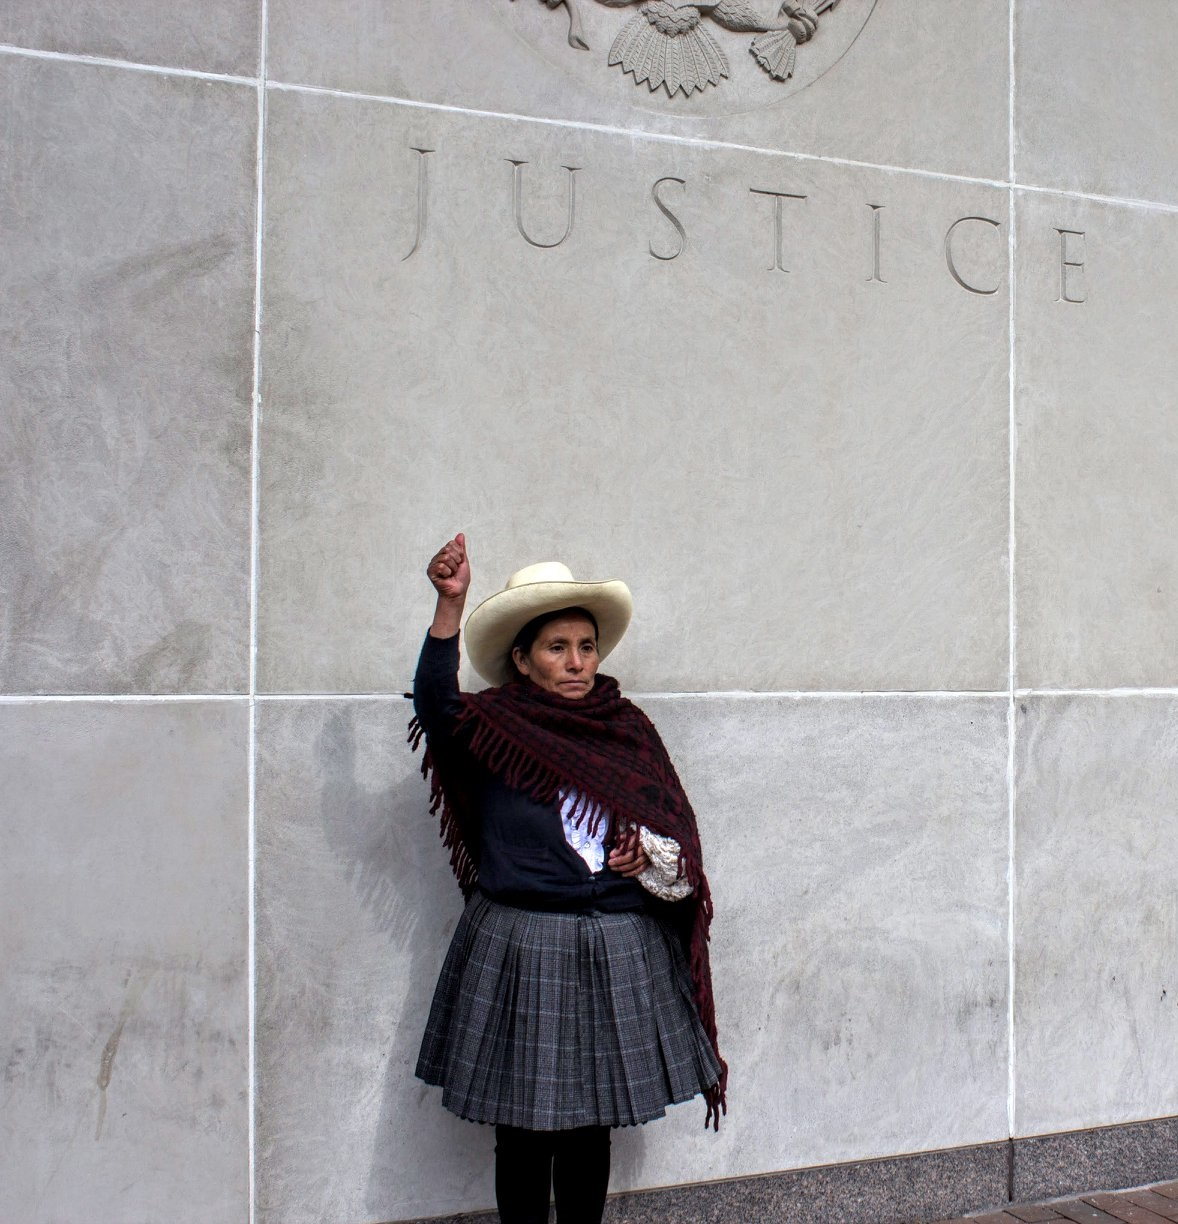 Goldman Prize winner and earth rights defender Maxima de Chaupe and her family won an important appeal in their case to hold the mining giant, Newmont, accountable for years of abuse.